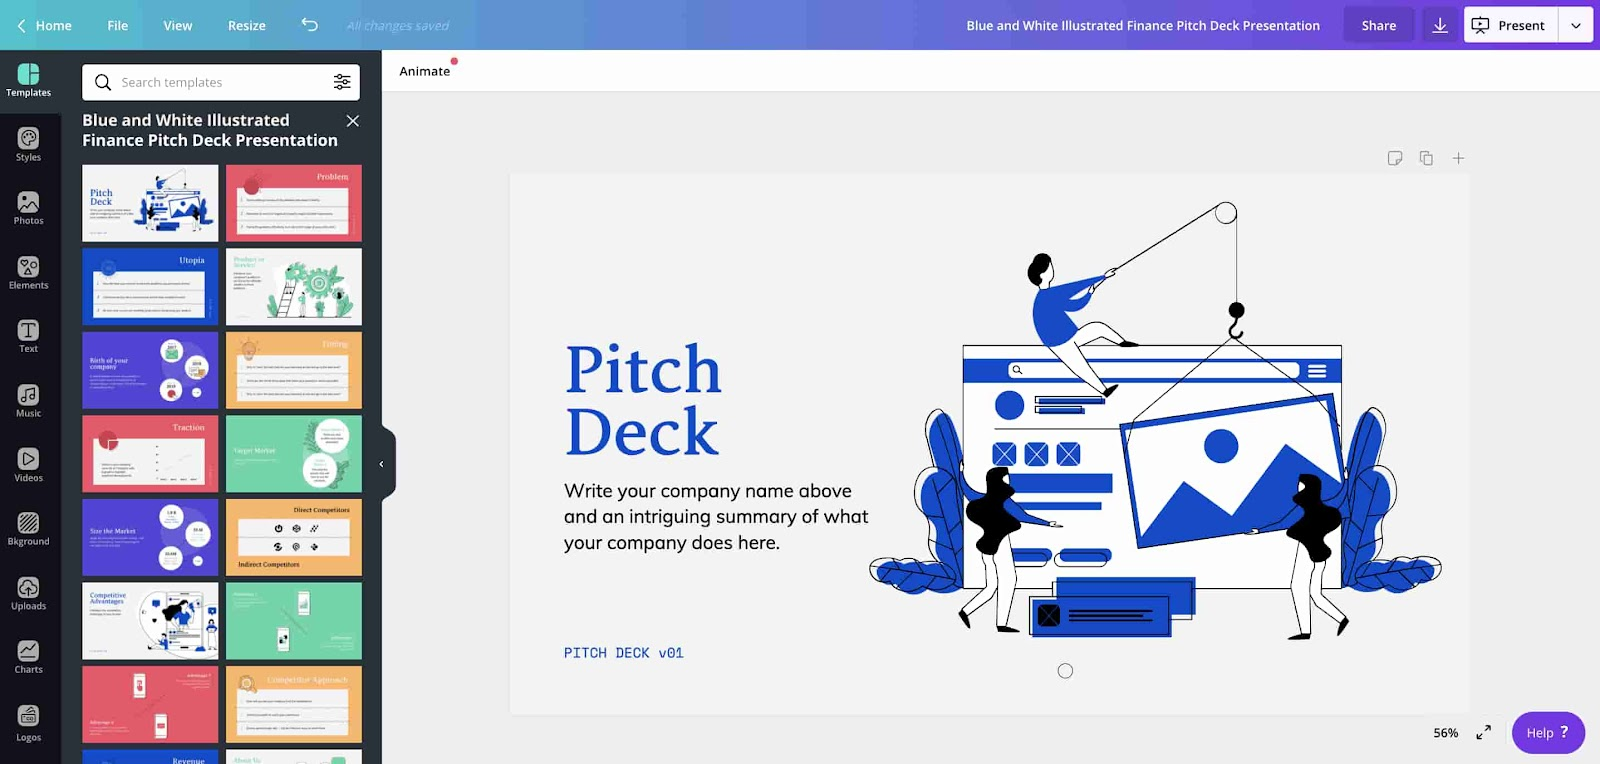 Pitch deck canva